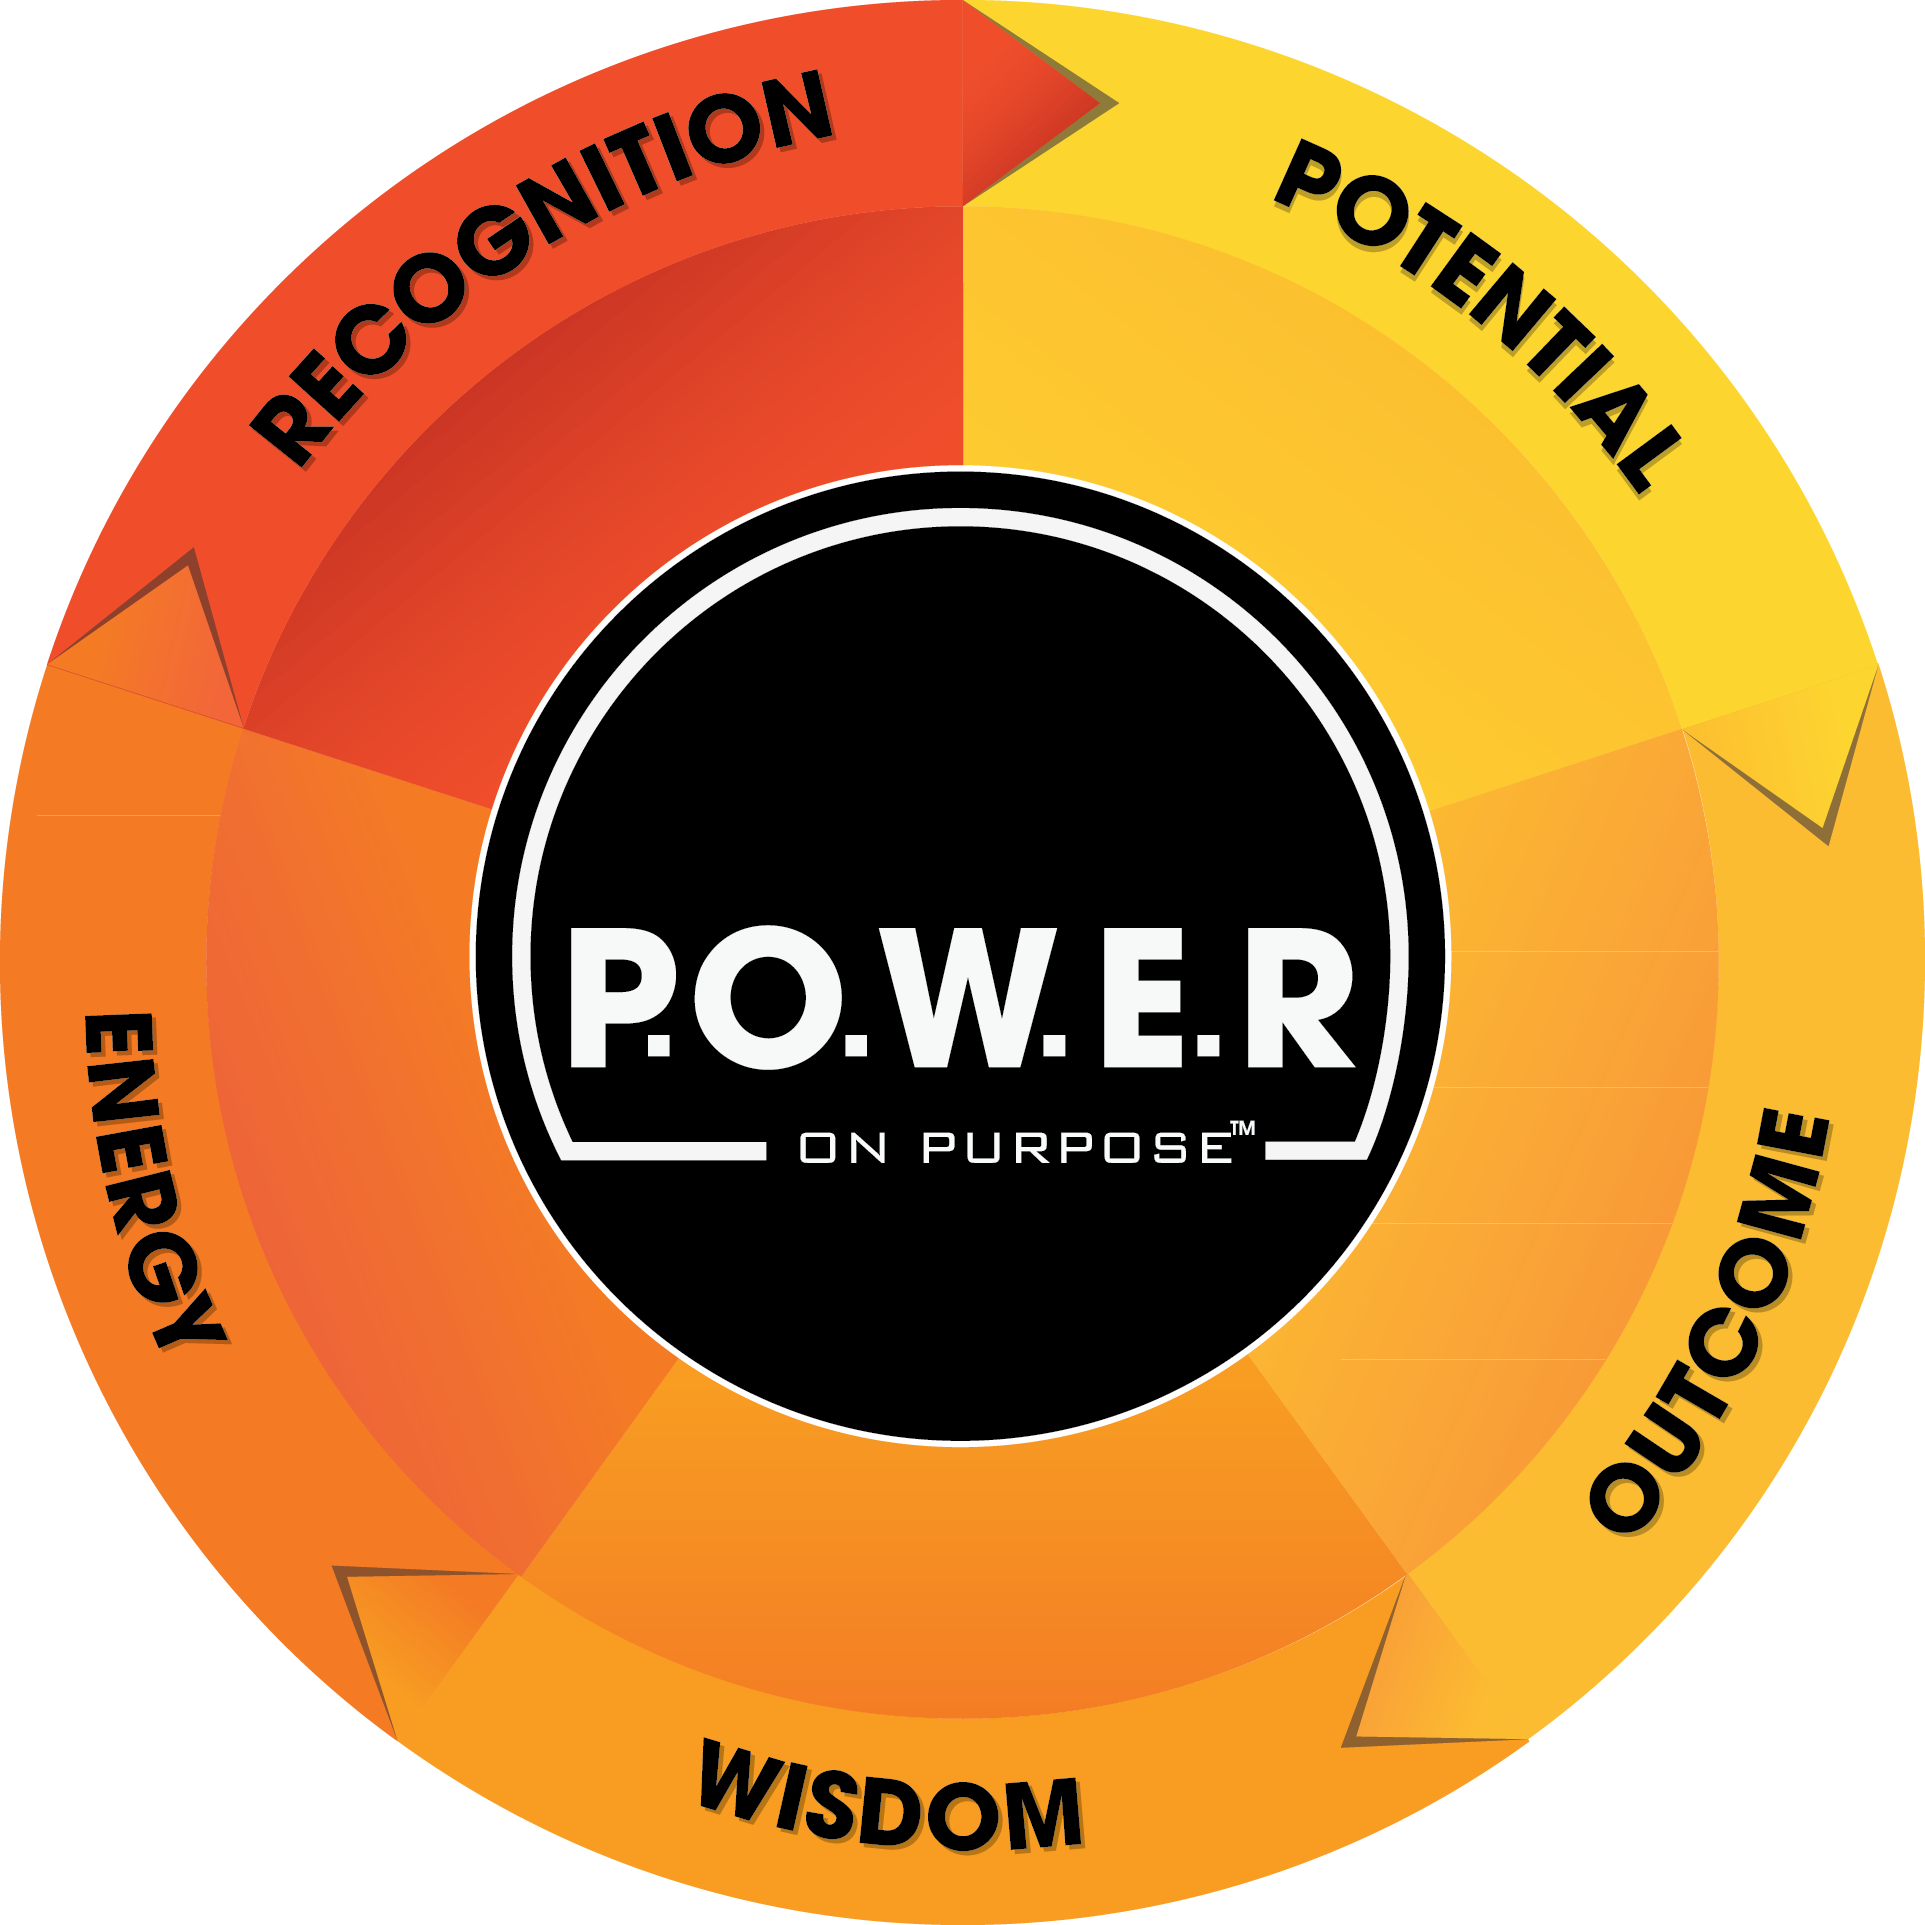 The 5 steps to power a life of purpose